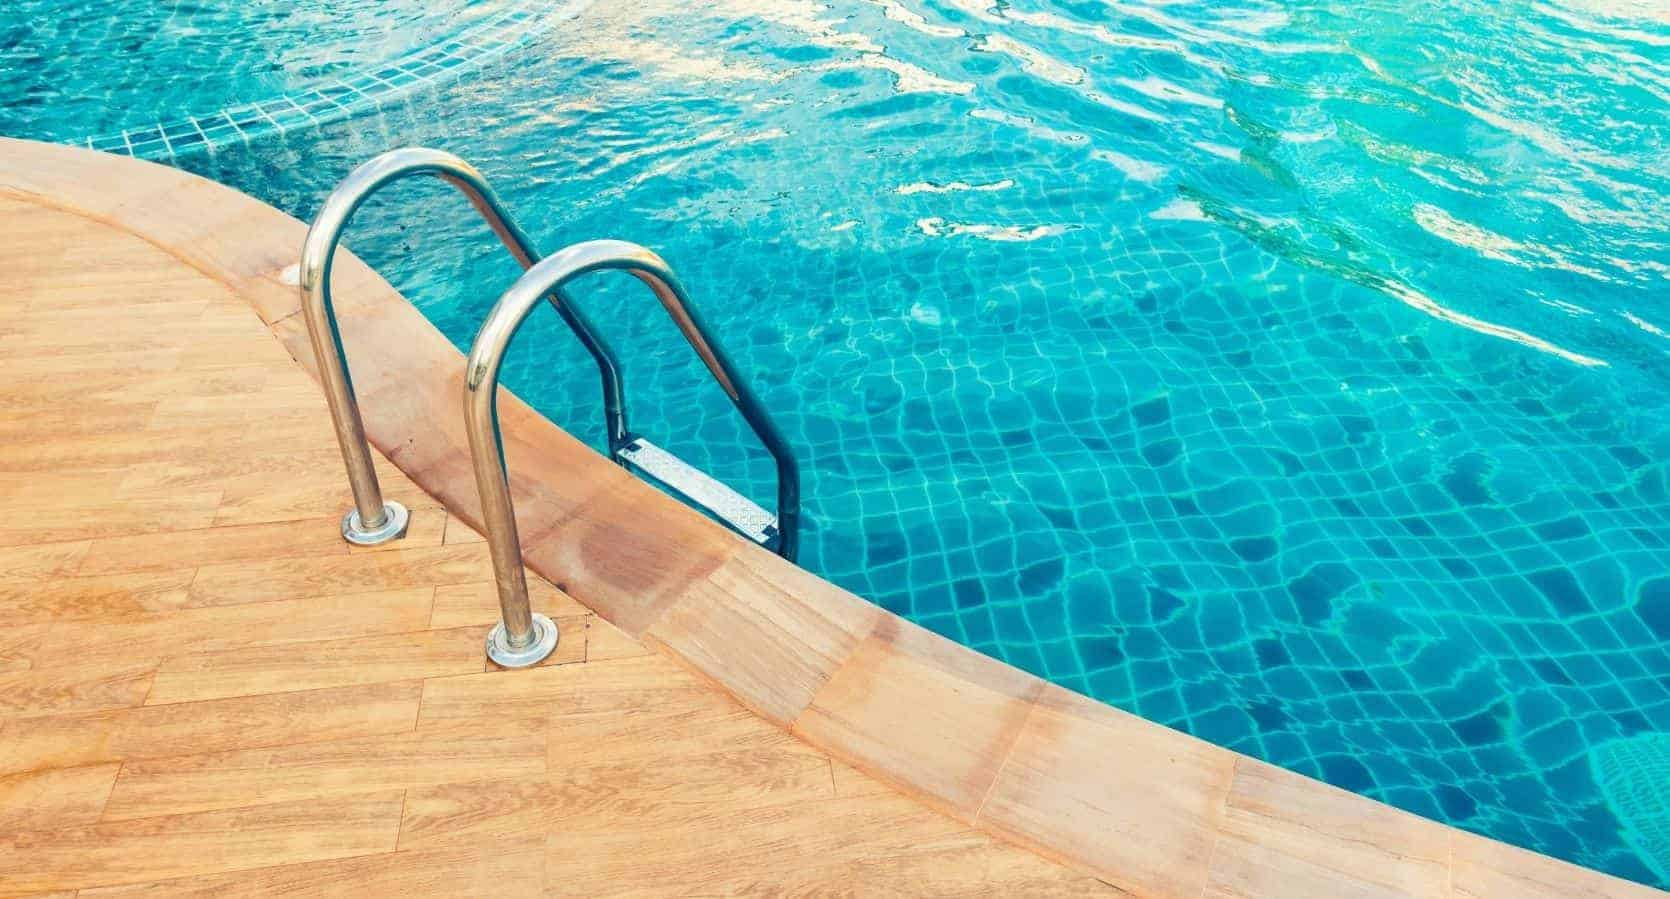 a decorative image of the side of a pool with a ladder going into the water.